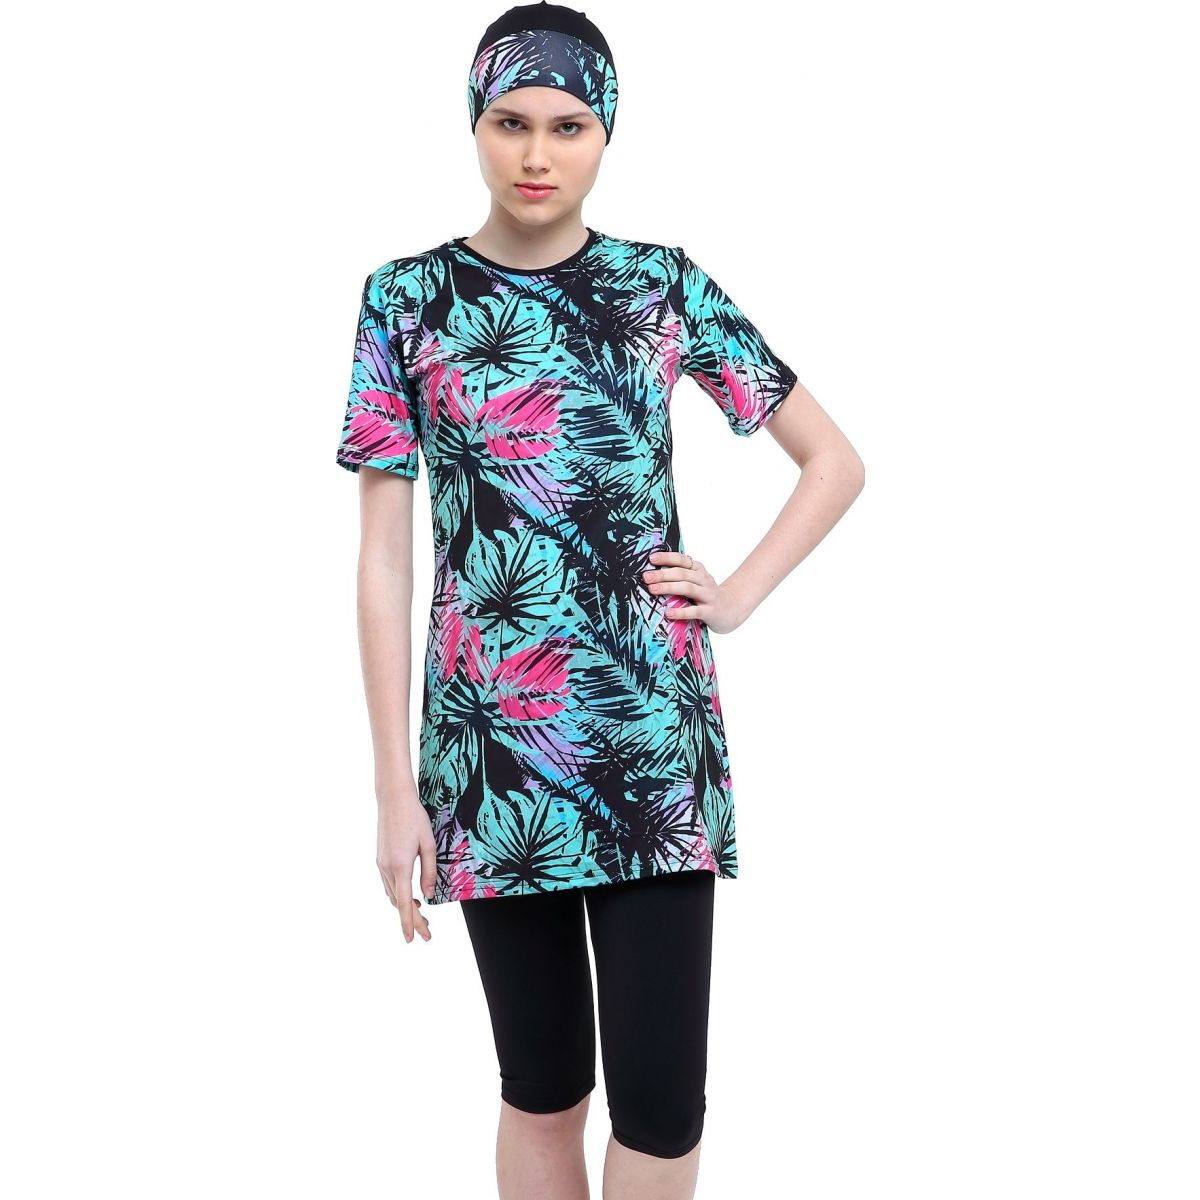 Argisa 7527 Half Sleeve Patterned Semi Hijab Swimwear 36-44 Muslim Hijab Islamic Swimsuit Burkini Turkey Half Cover With Swim Hat